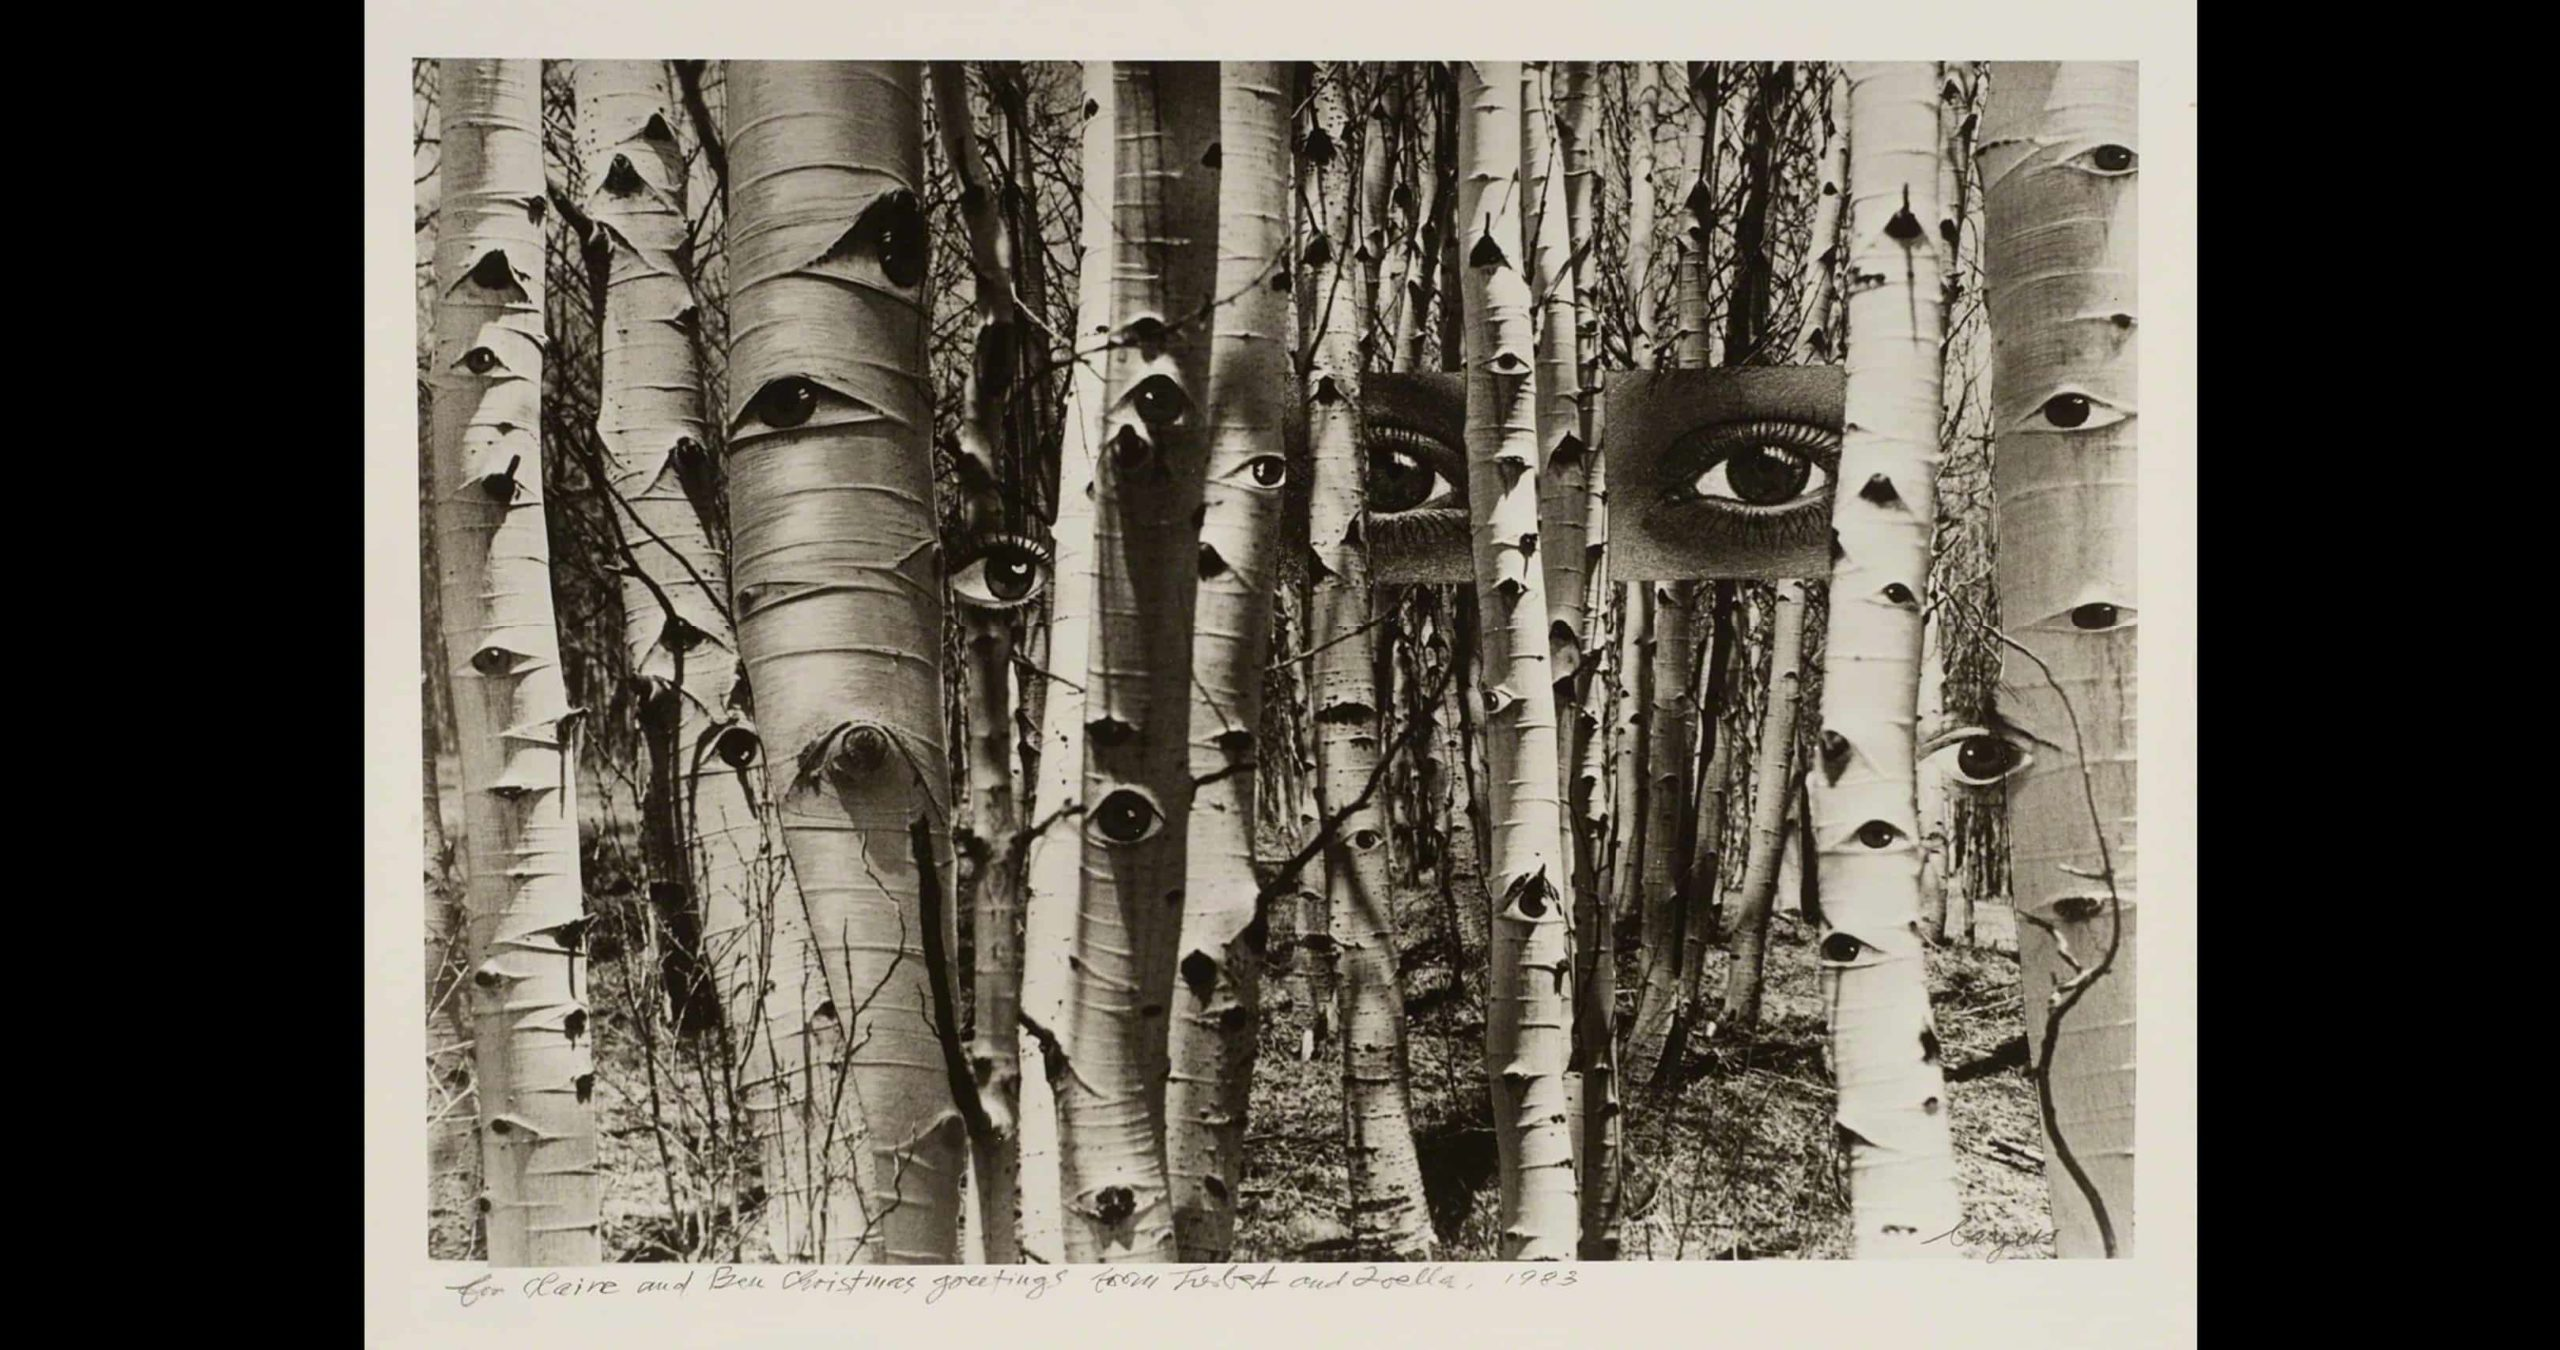 Herbert Bayer_In search of Times Past, 1959